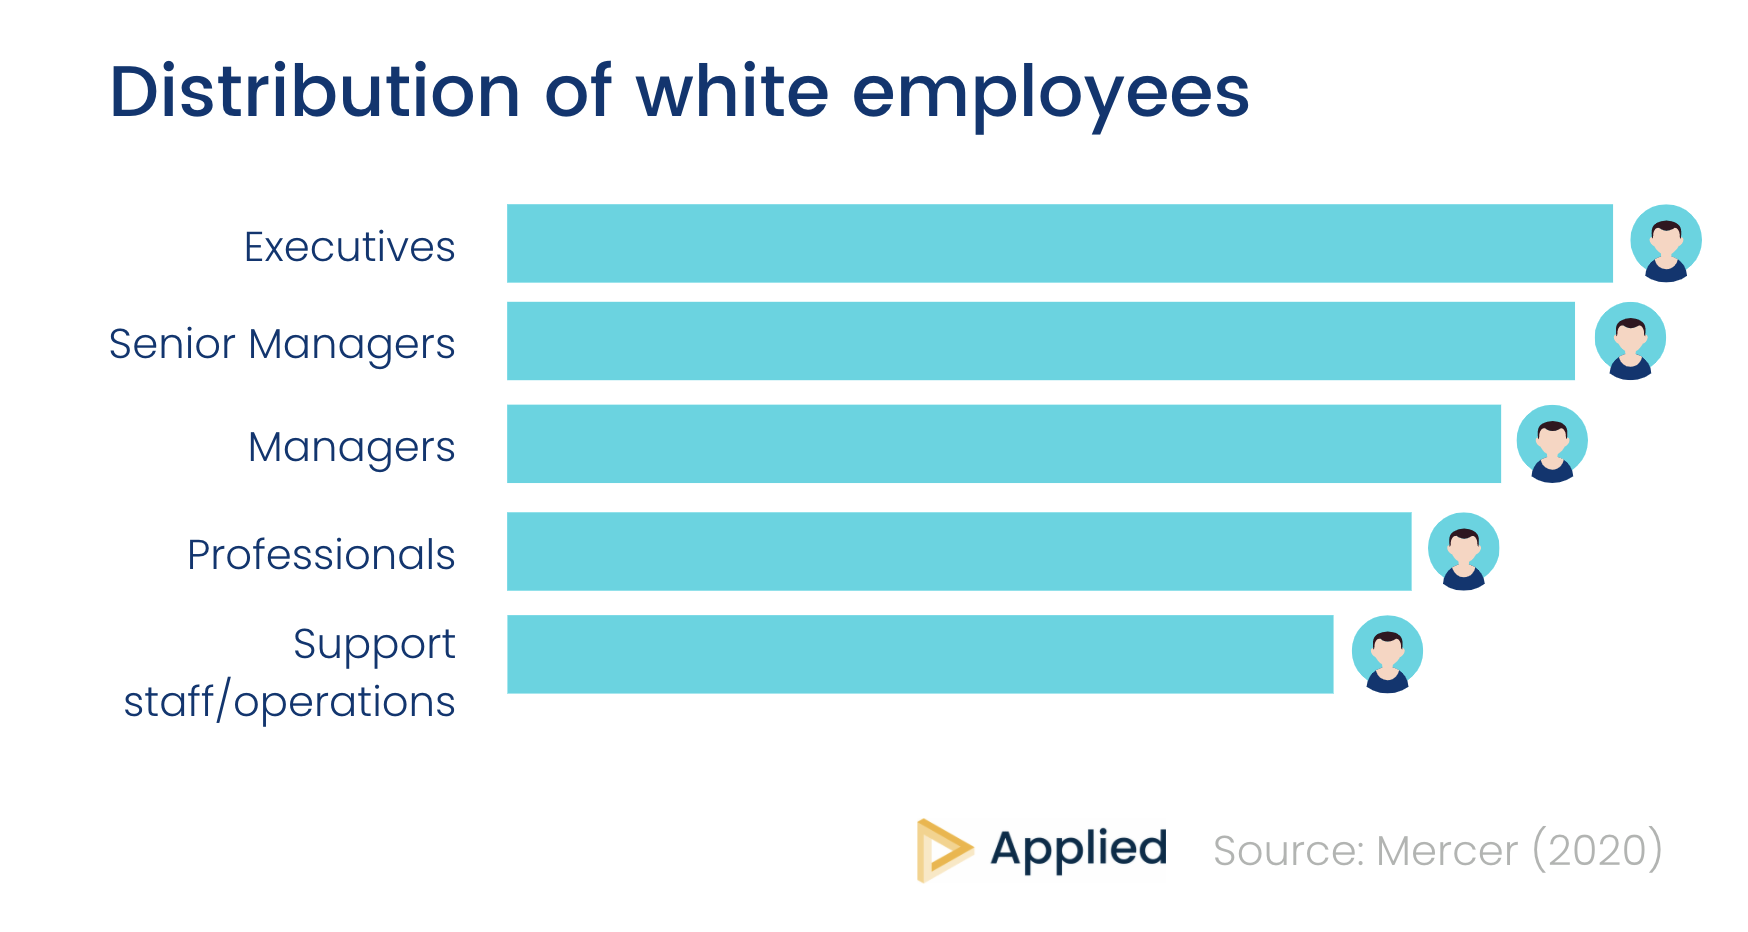 Distribution of white employees by seniority chart